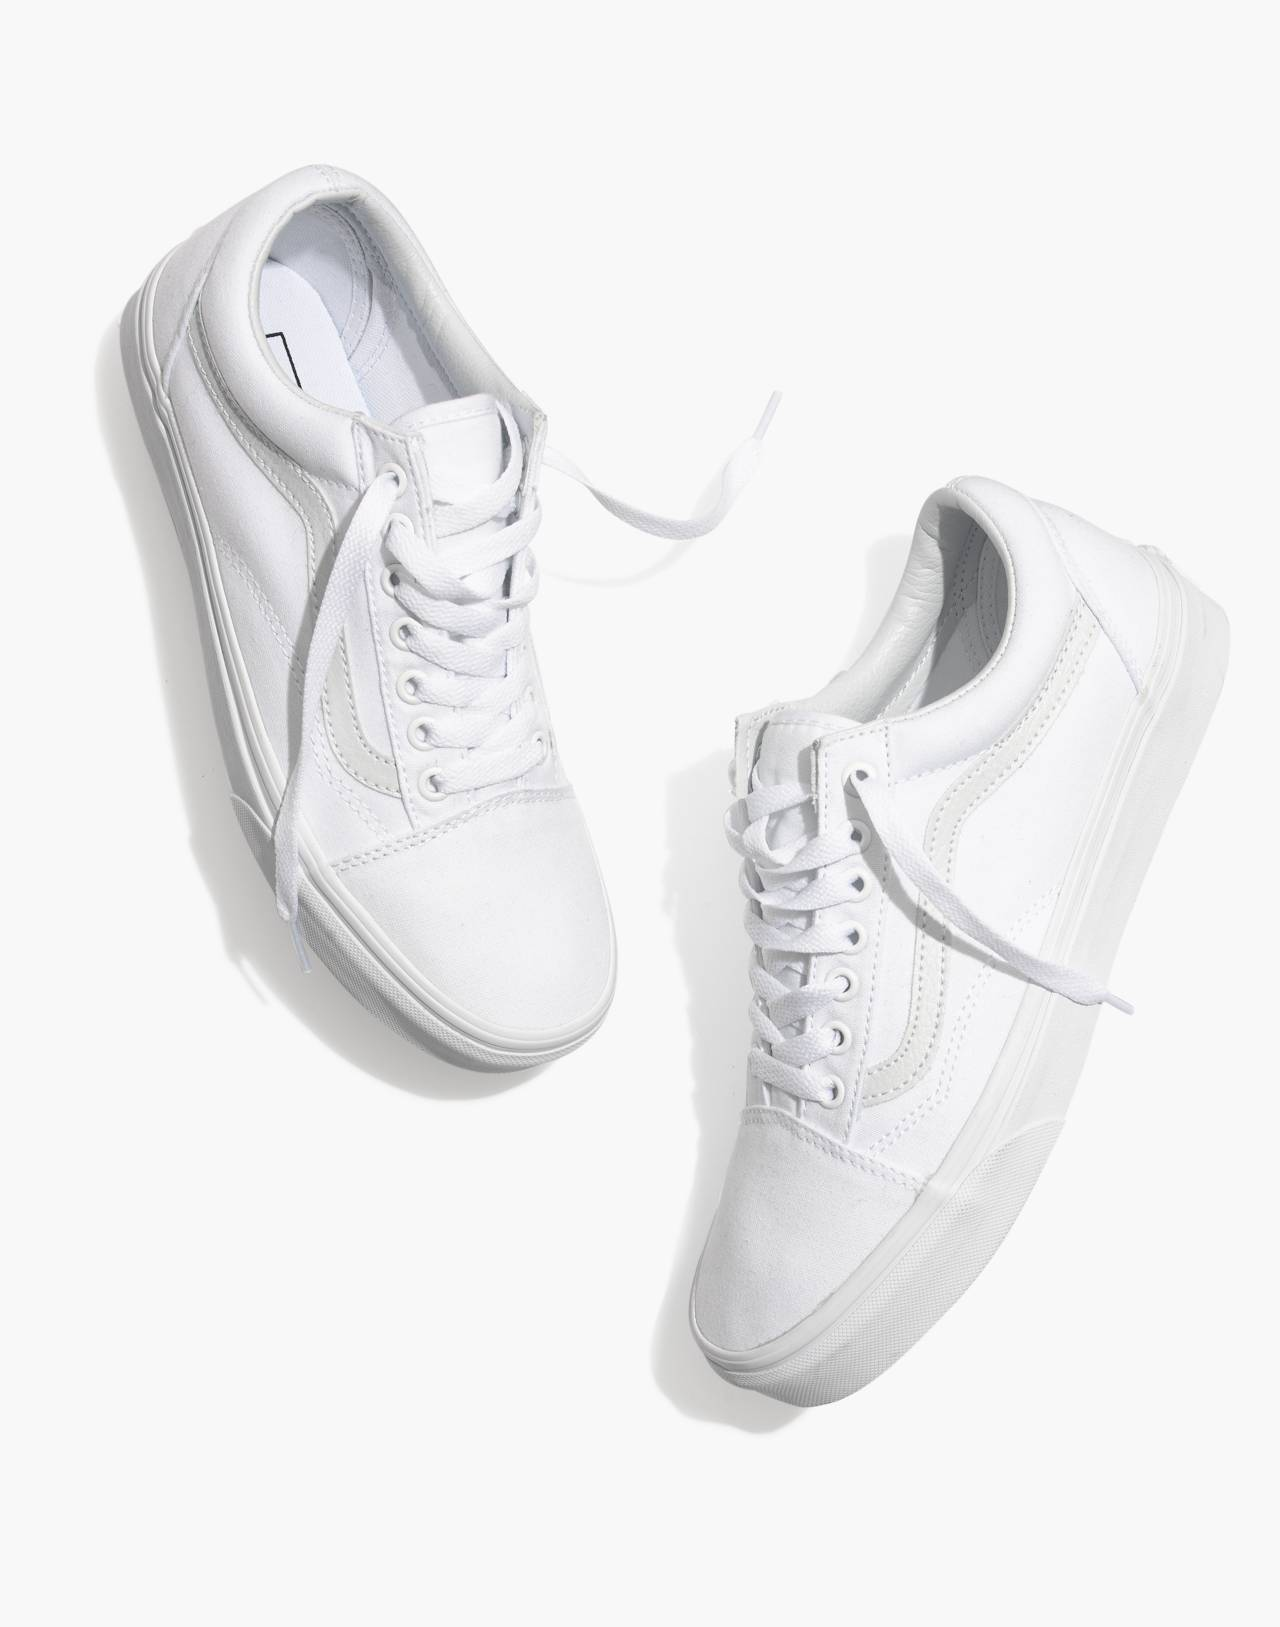 Vans® Unisex Old Skool Lace-Up Sneakers in Canvas and Suede in true white image 1